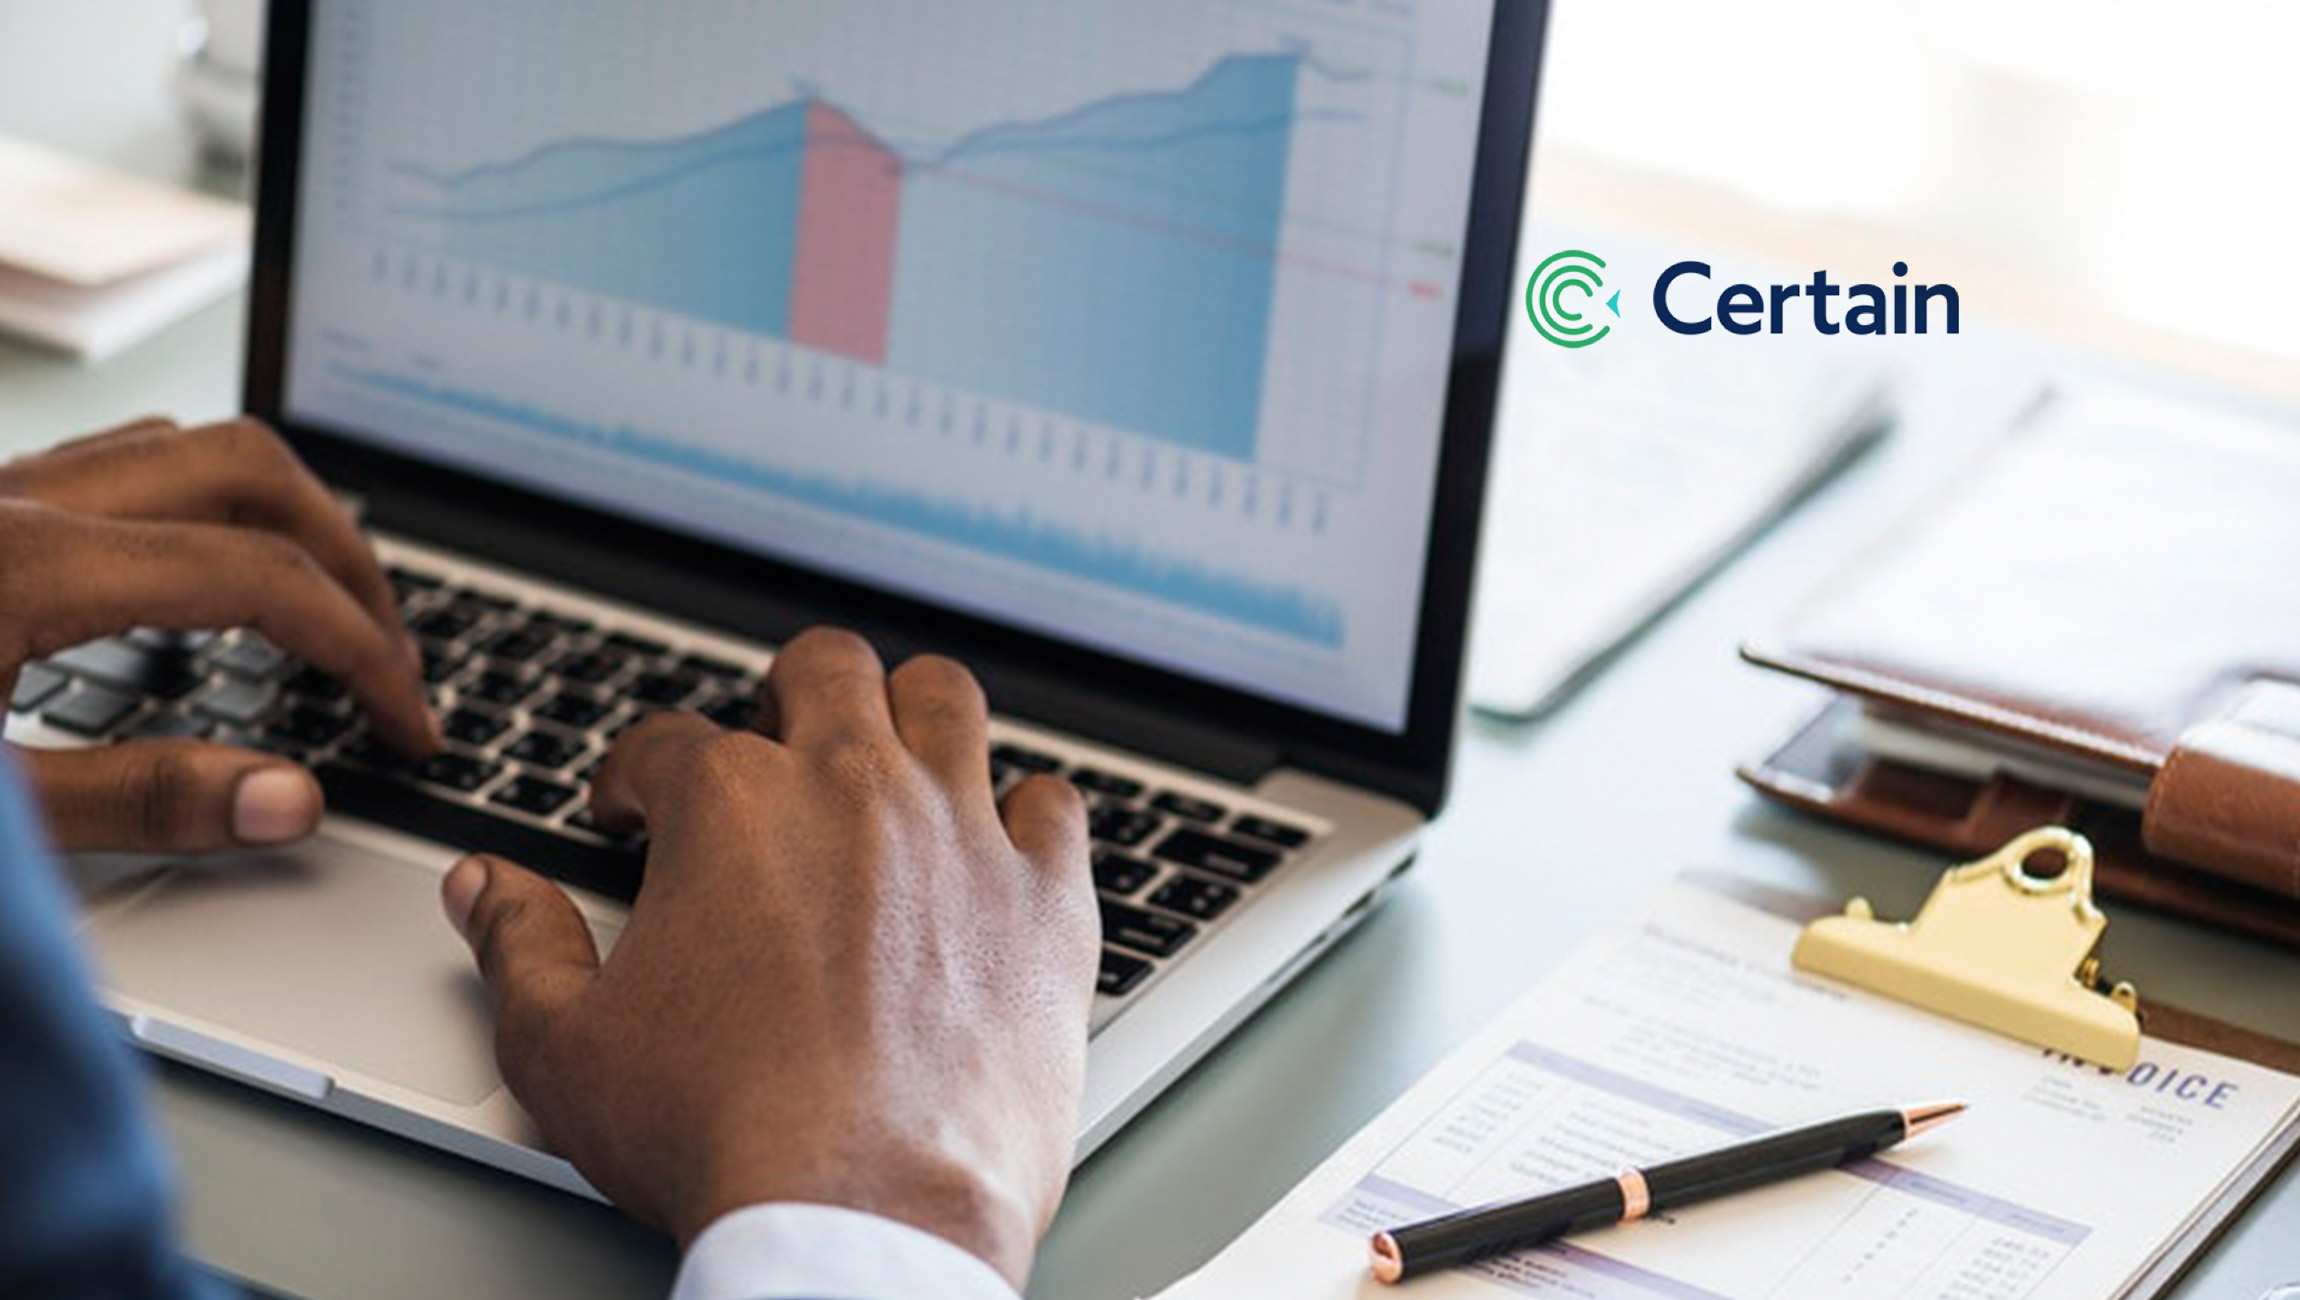 Certain Unveils the First Real-Time Event Data Integration Tool